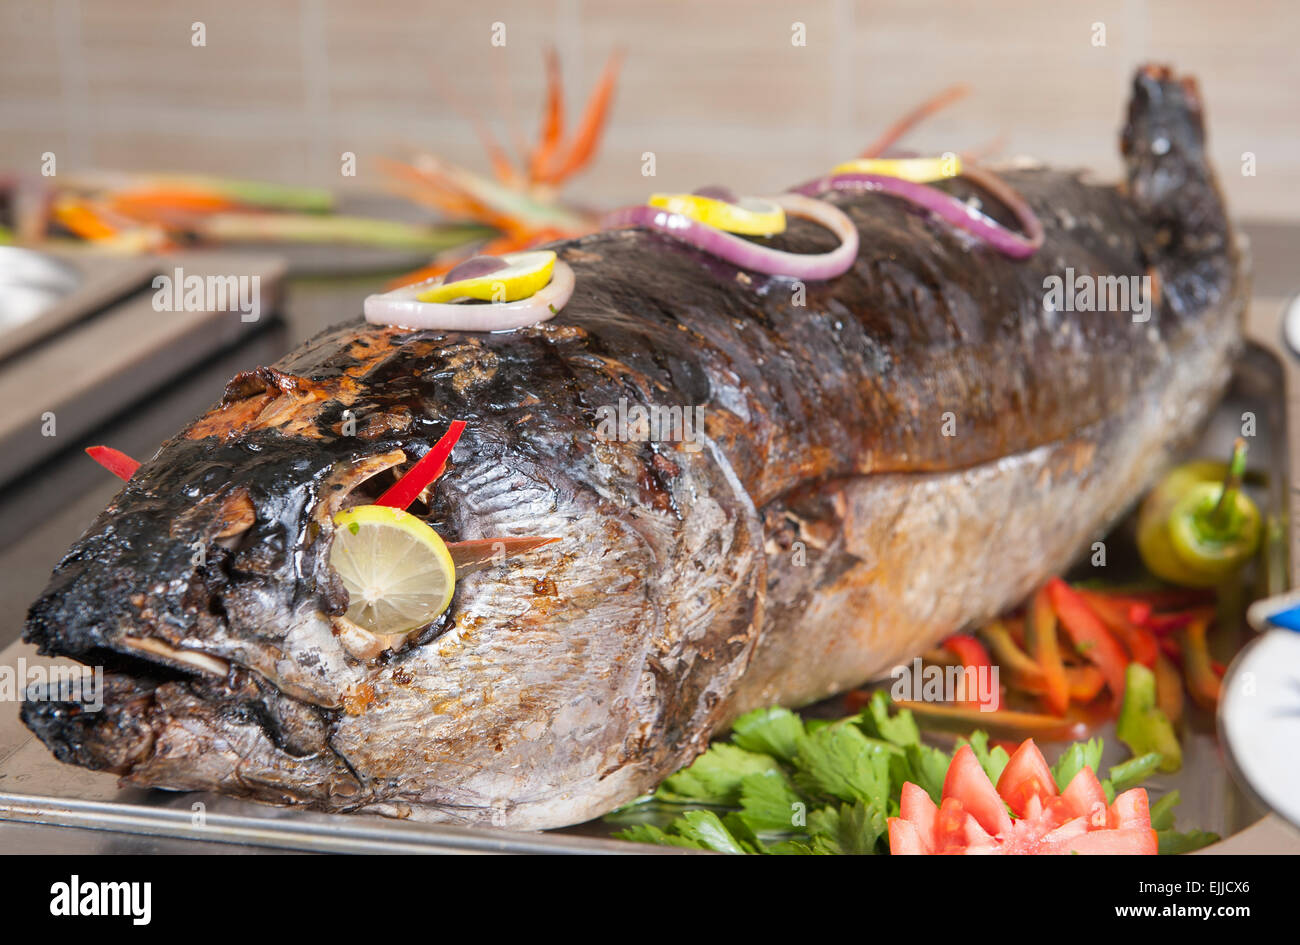 Whole Grilled Salmon Fish With Salad At A Hotel Restaurant